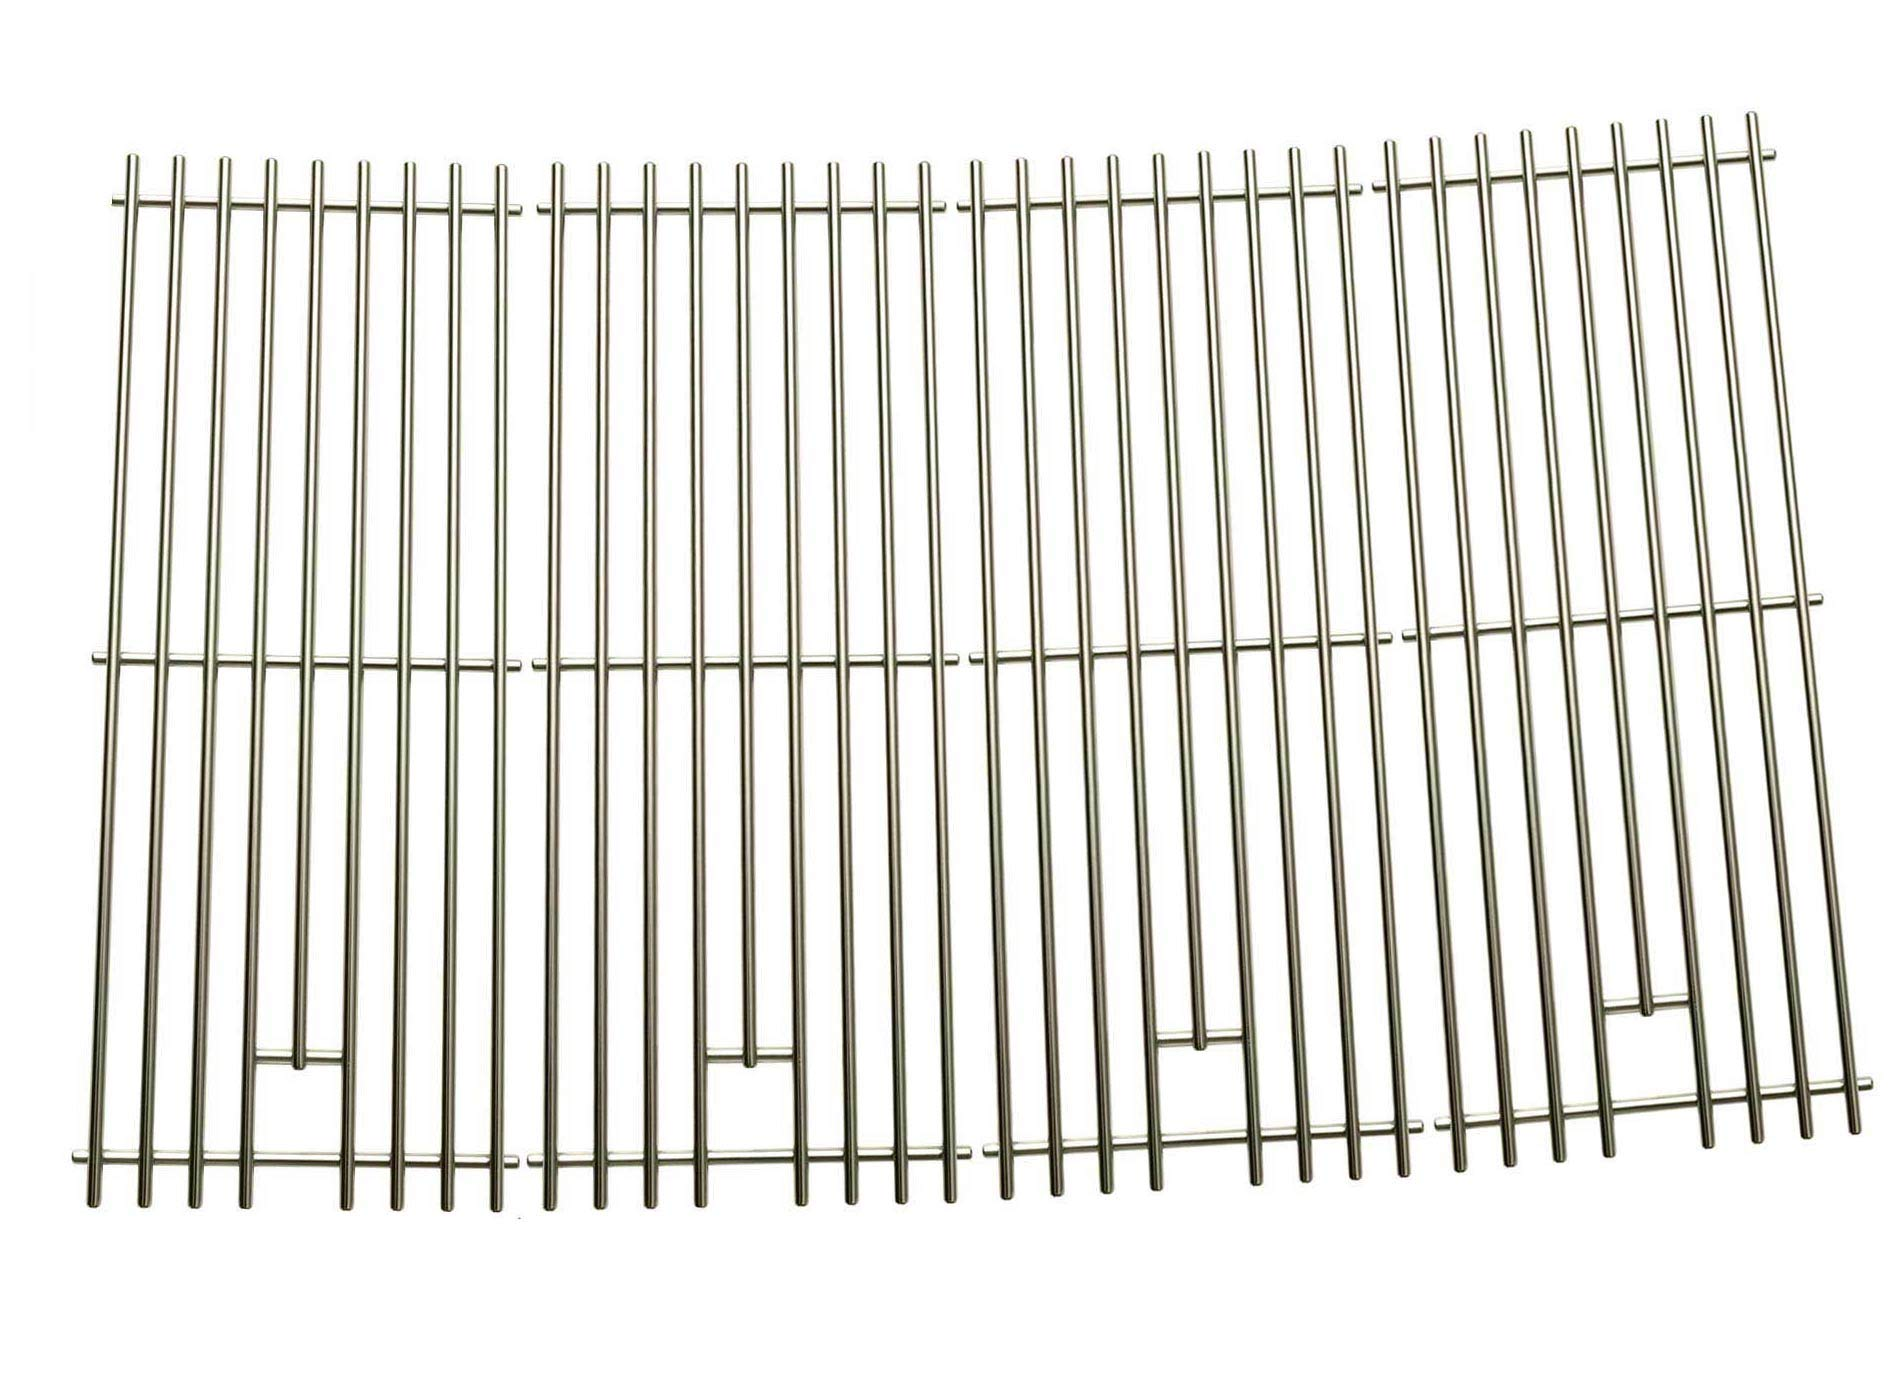 Kenmore 148.16656010, 148.2368231, 640-05057386-4, 90118 and Master Forge SH3118B Replacement Stainless Cooking Grid, Set of 4